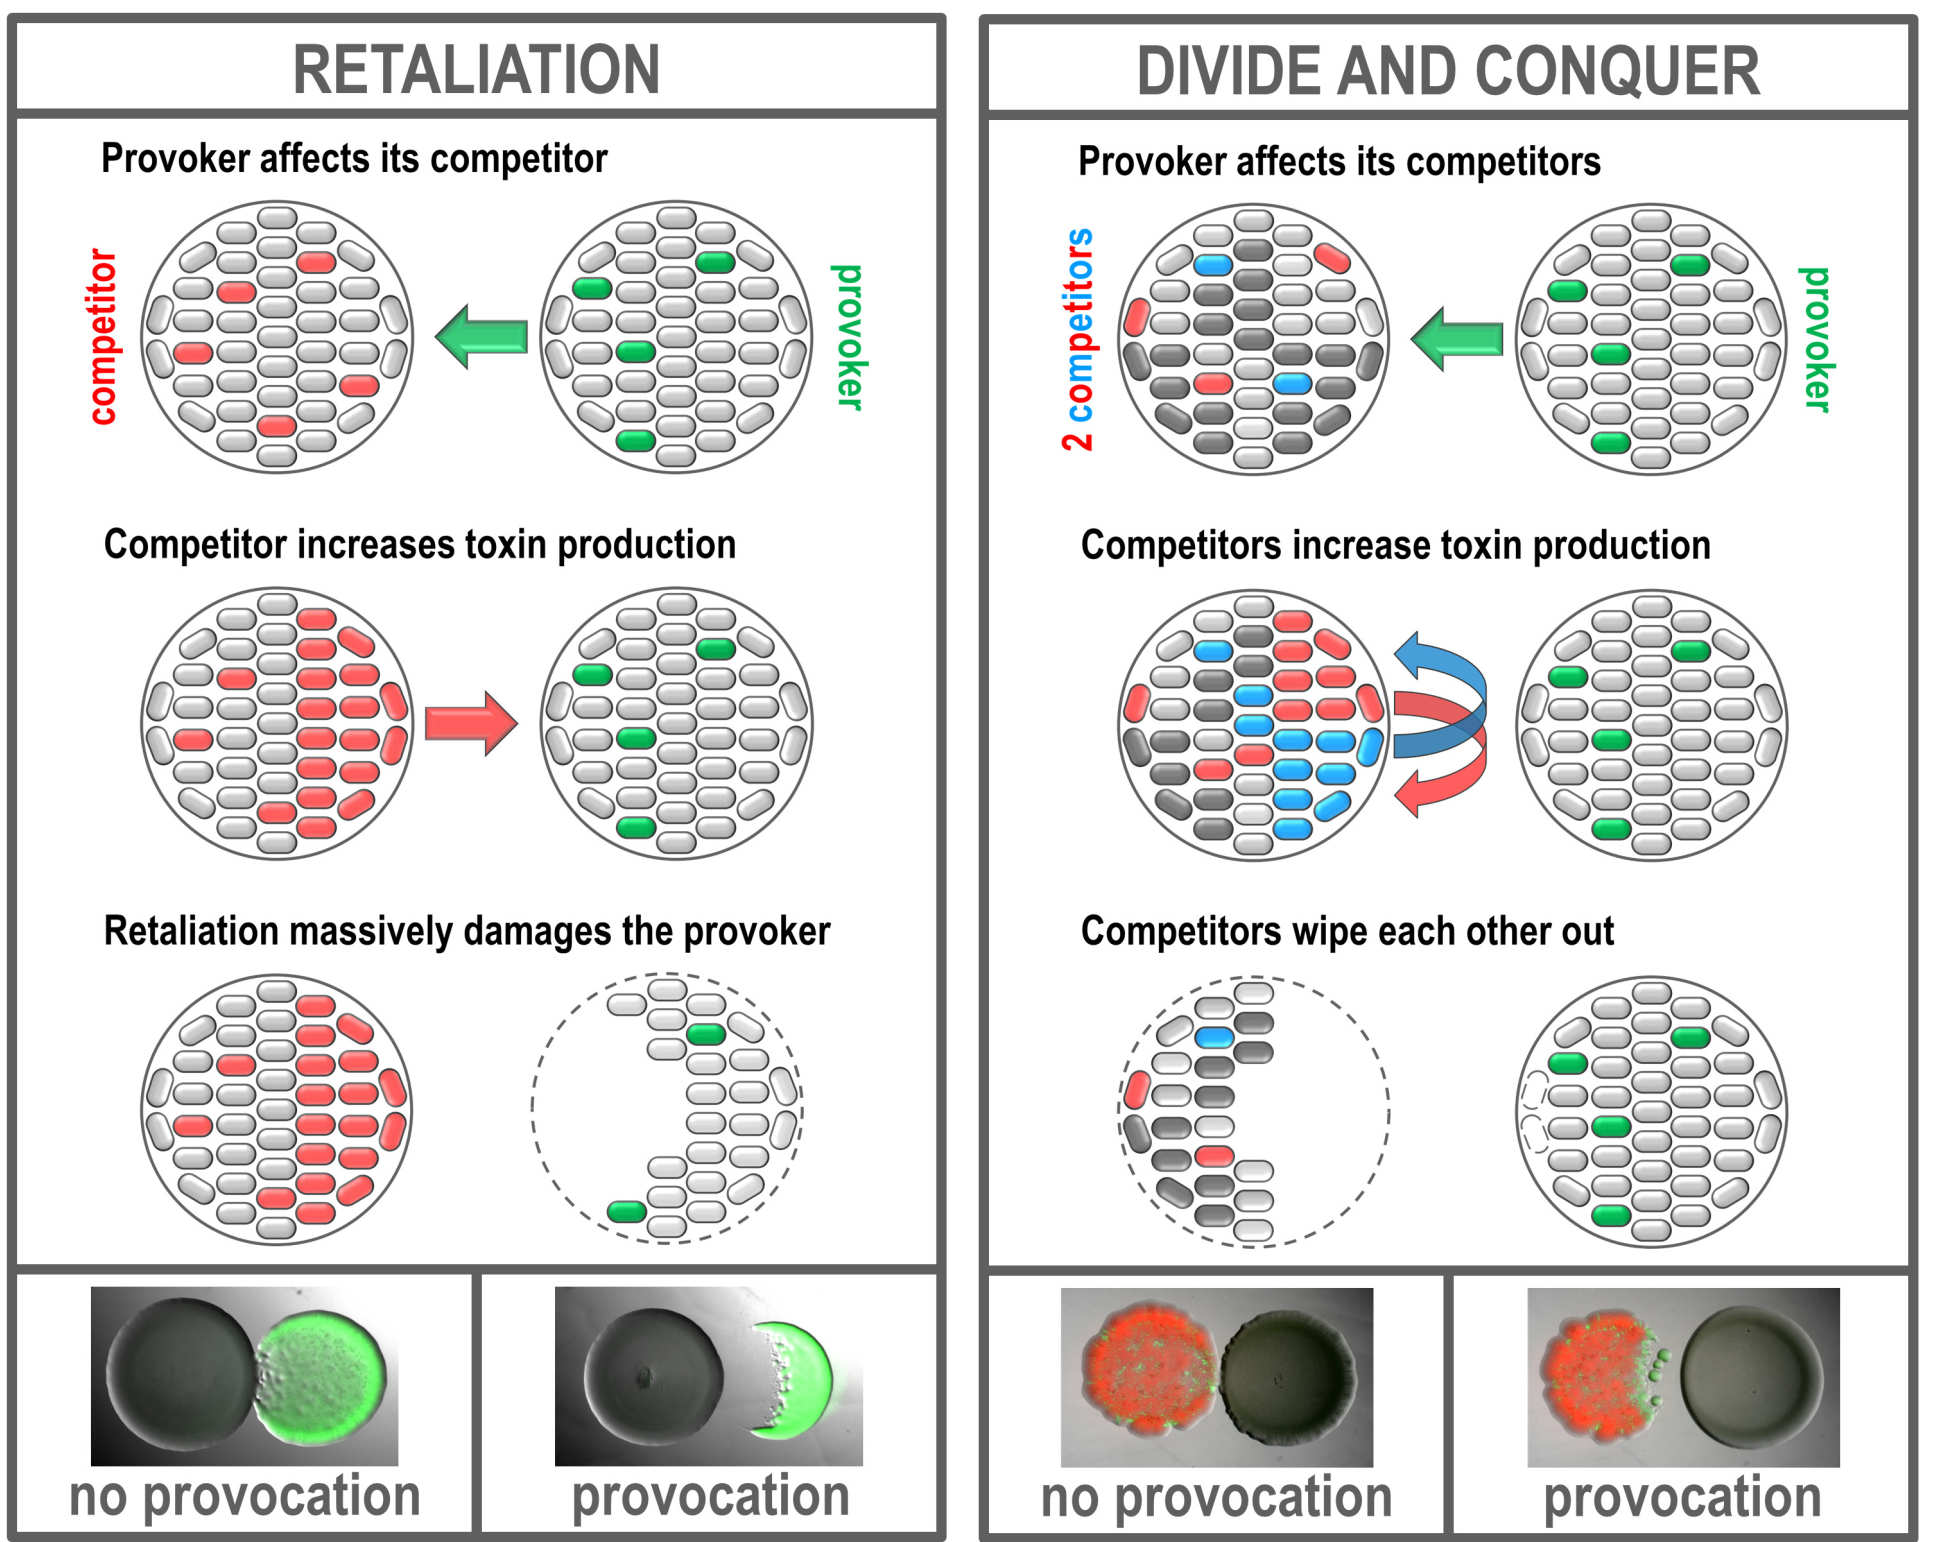 Divide and conquer: A provoking toxin producer (right) is sensed through its released toxin by its competitors (left); the competitors are closer to one another than to the provoking strain. Provocation leads to increase in aggression in the competing mixed colony, but in this case the produced toxins wipe out the two competing strains while affecting the provoker less. The panels at the bottom show the difference in outcome when a strain is non-provoking (unlabelled colony, left panel) or provoking (unlabelled colony, right panel) against the same set of competitors (red/green colony in both panels).